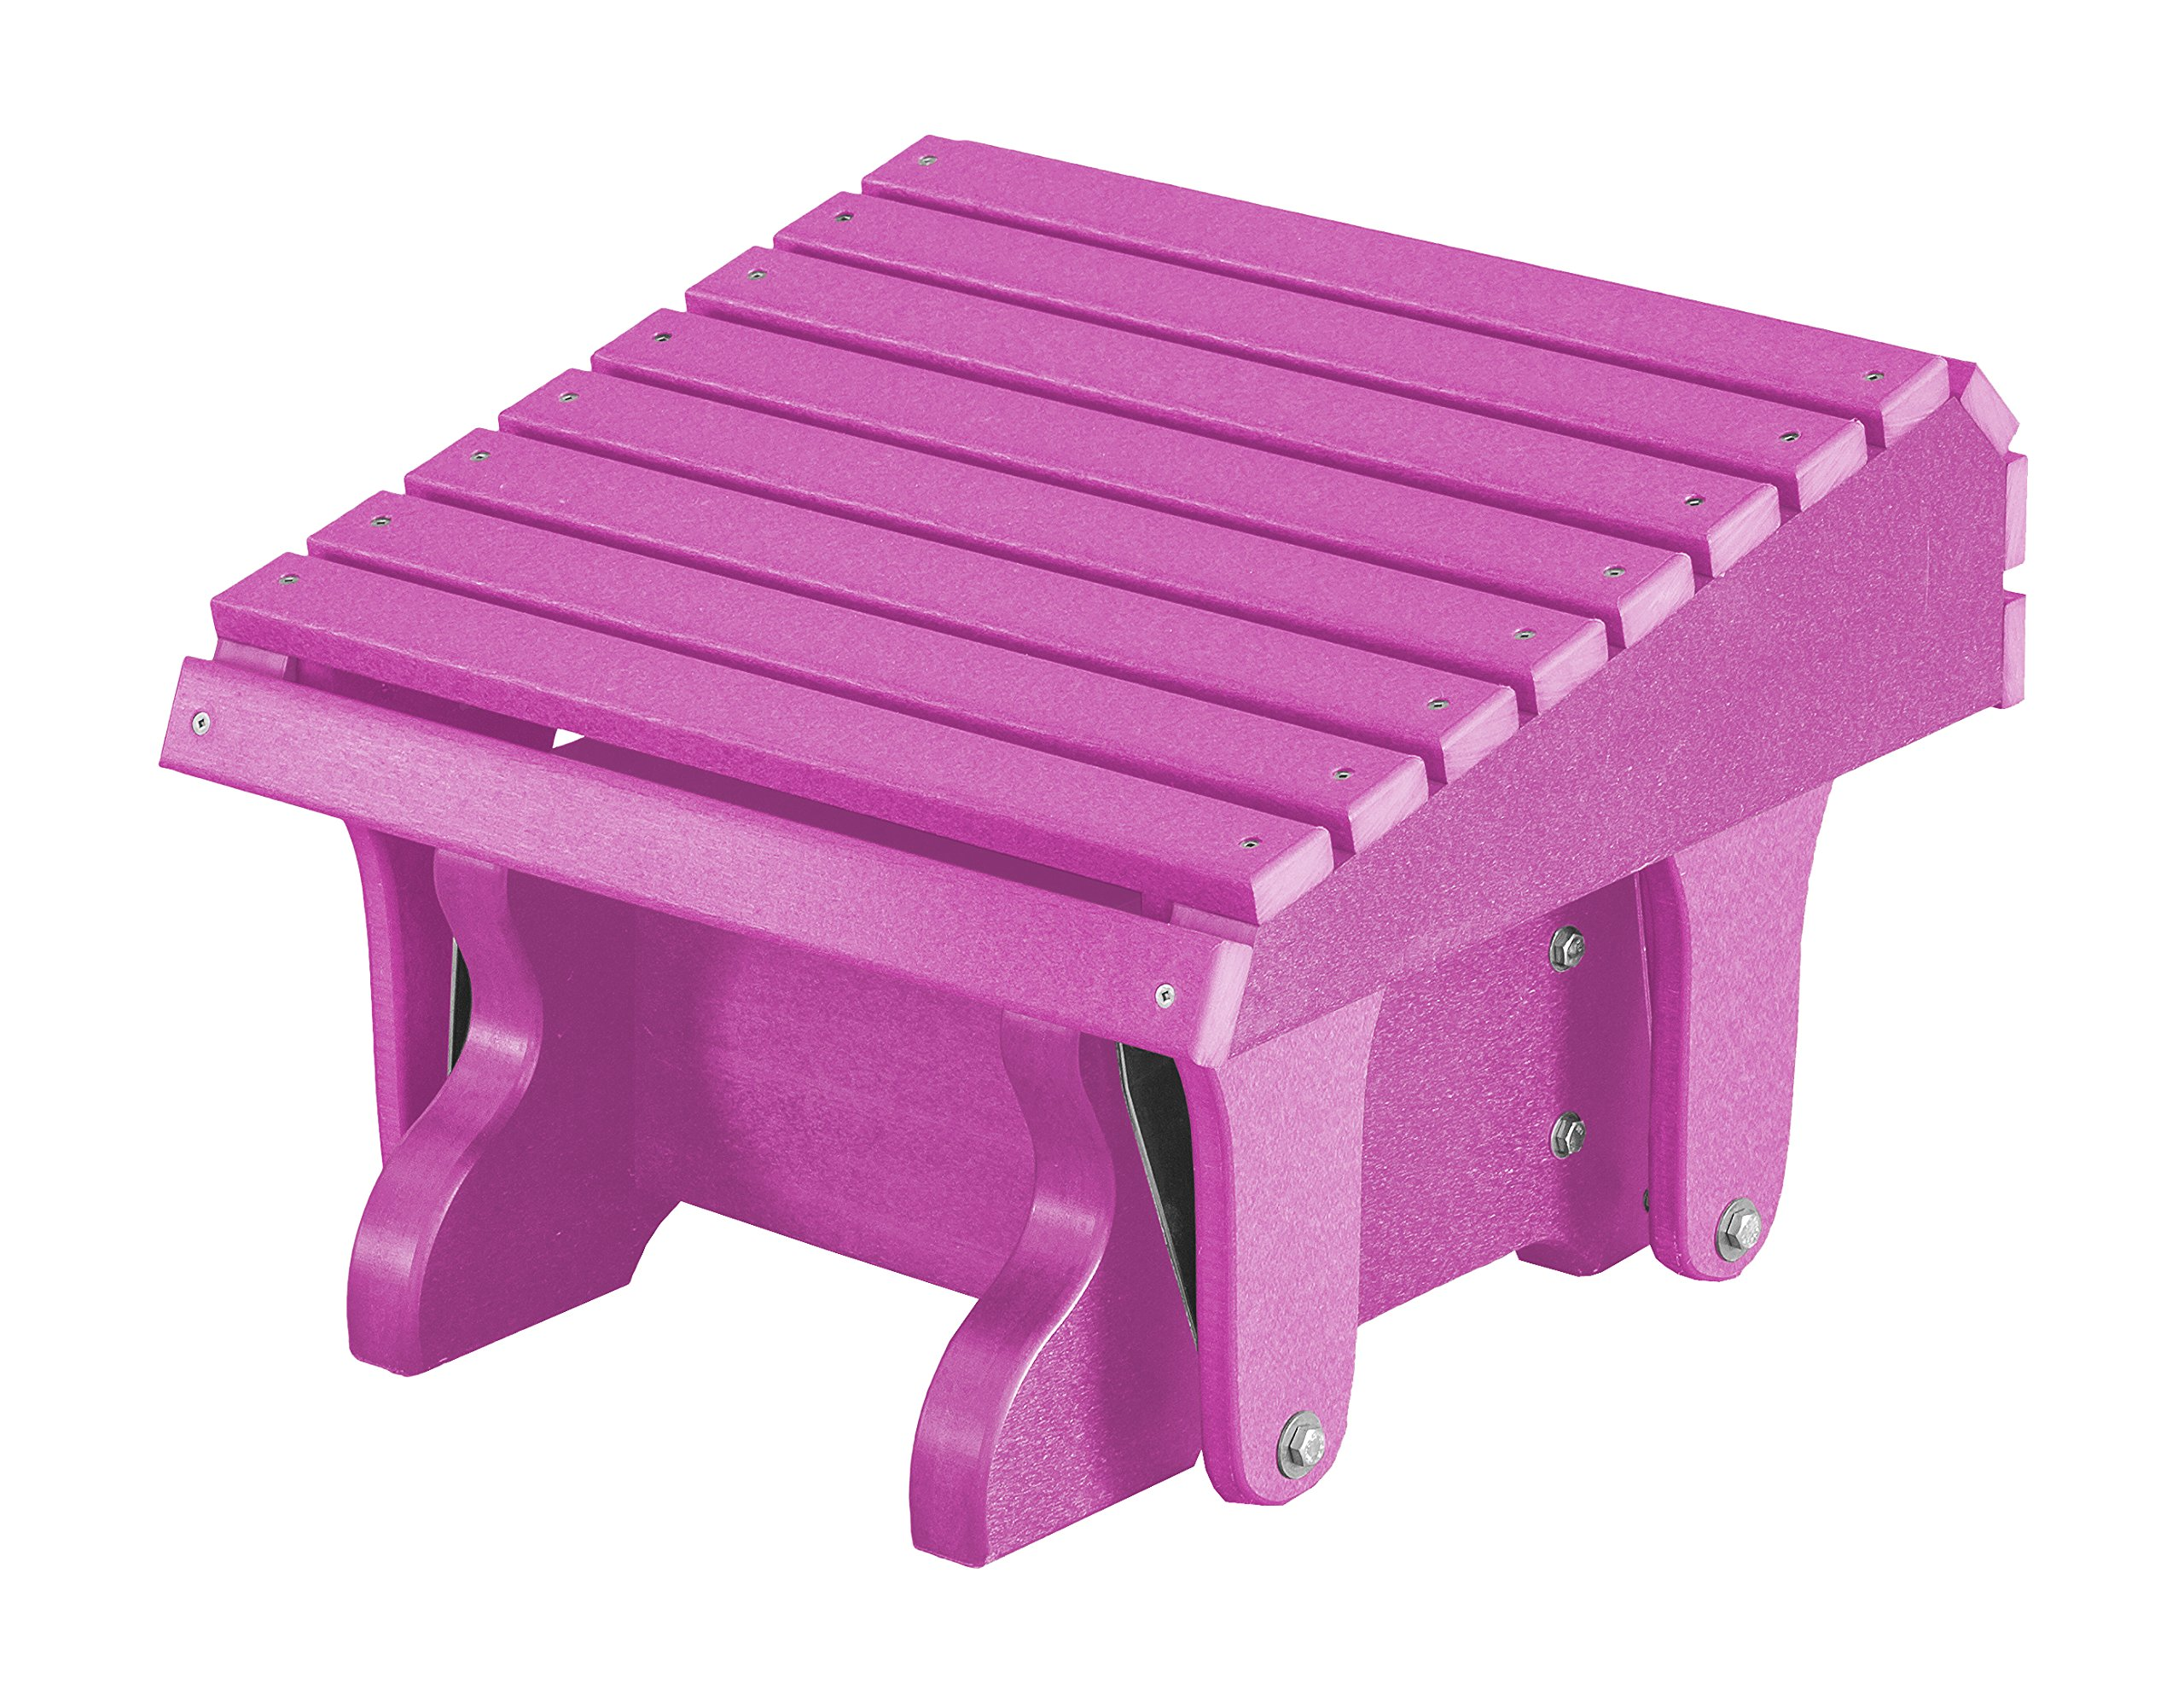 DutchCrafters EcoPoly Lumber Gliding Footrest (Purple) by DutchCrafters